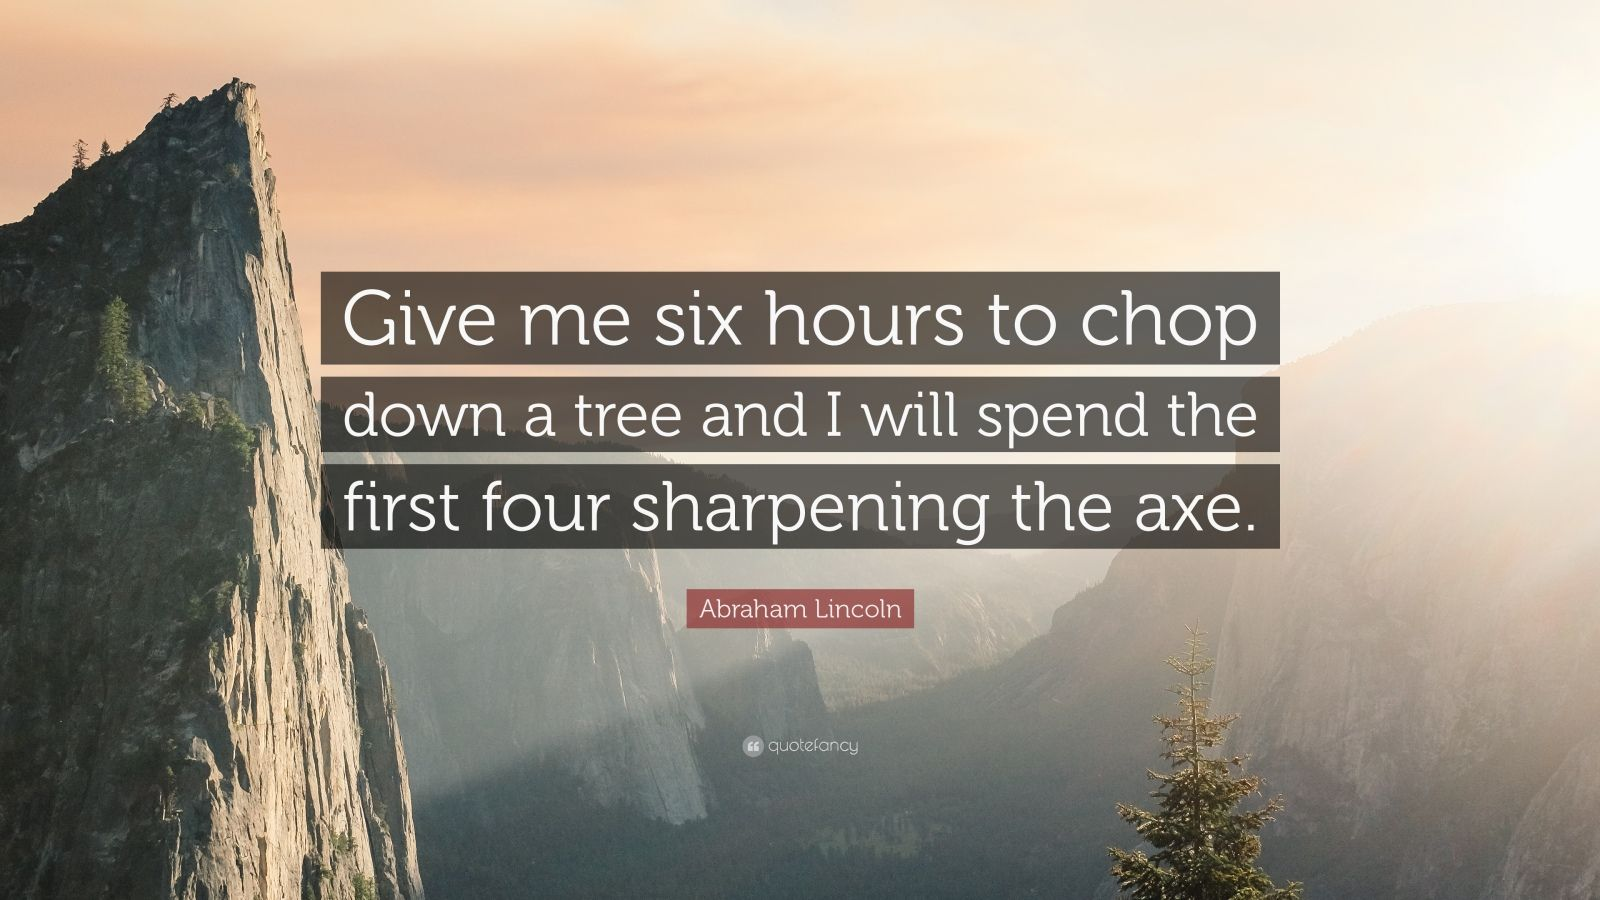 Quotes Abraham Lincoln Chop Down a Tree Images